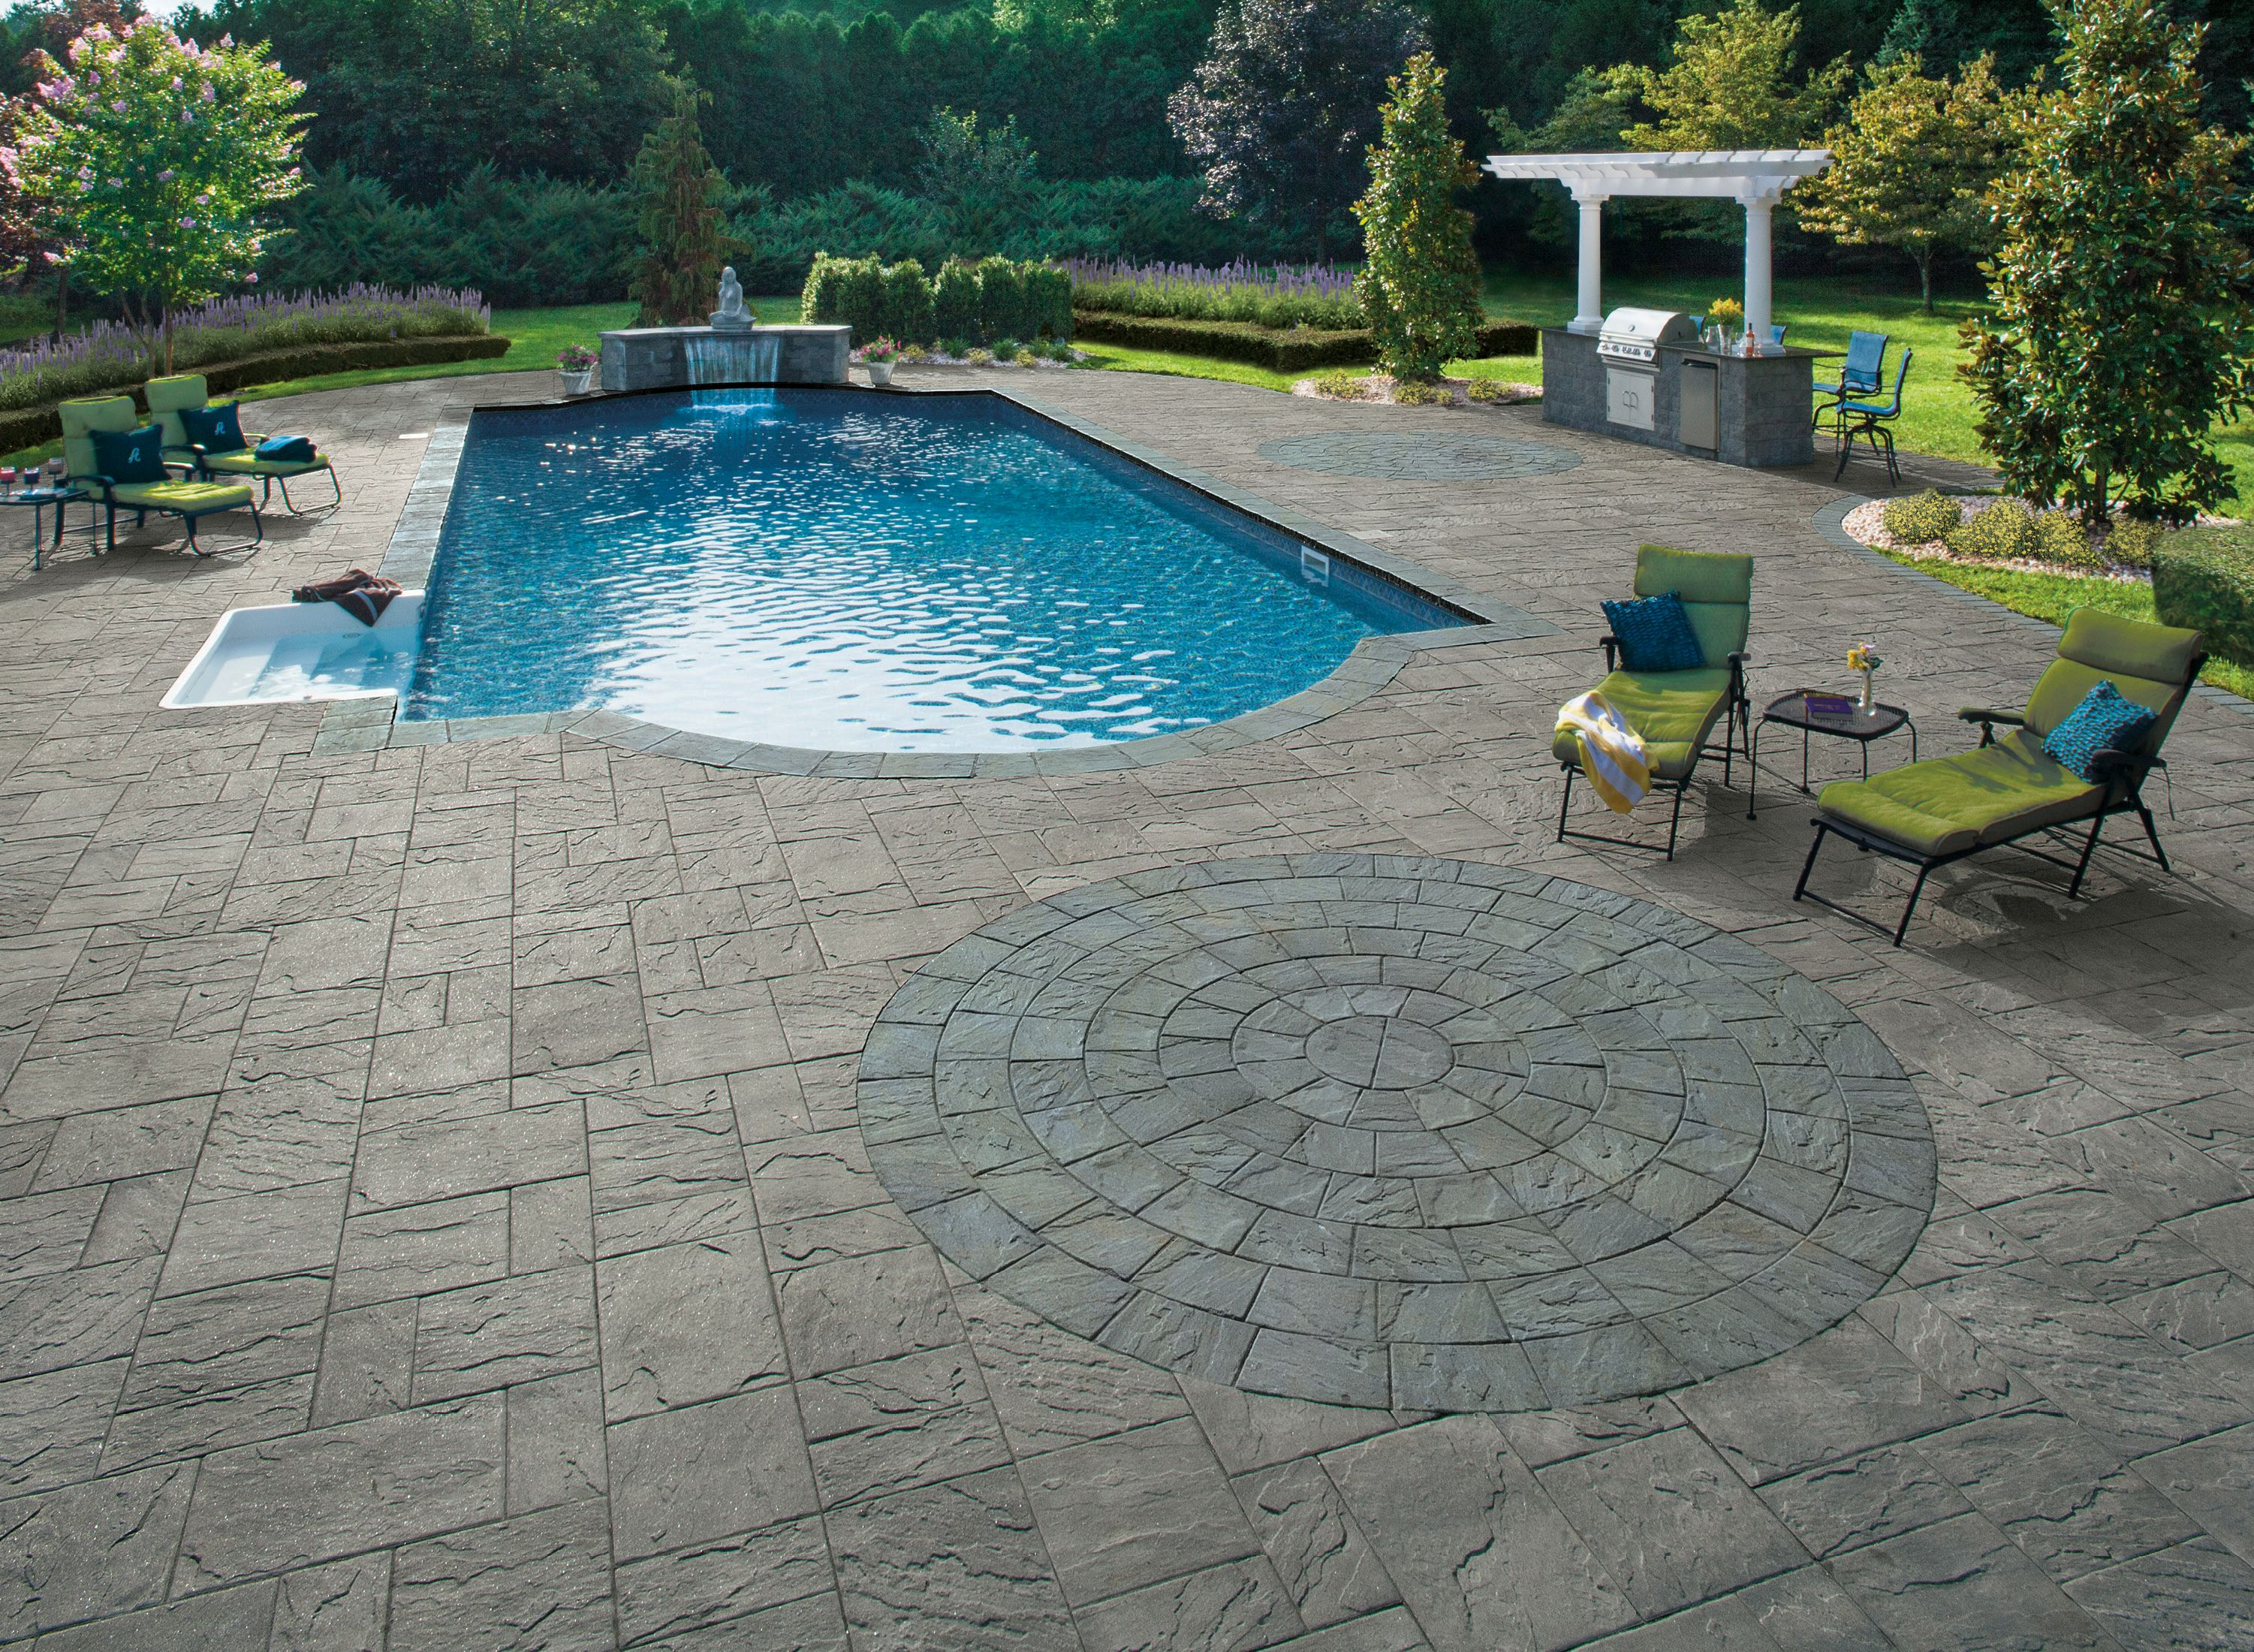 Cambridge pavingstones wall systems color options - Add A Circle Pattern To Your Pavingstone Pool Patio Cambridge Pavingstones With Armortec Offers Easy